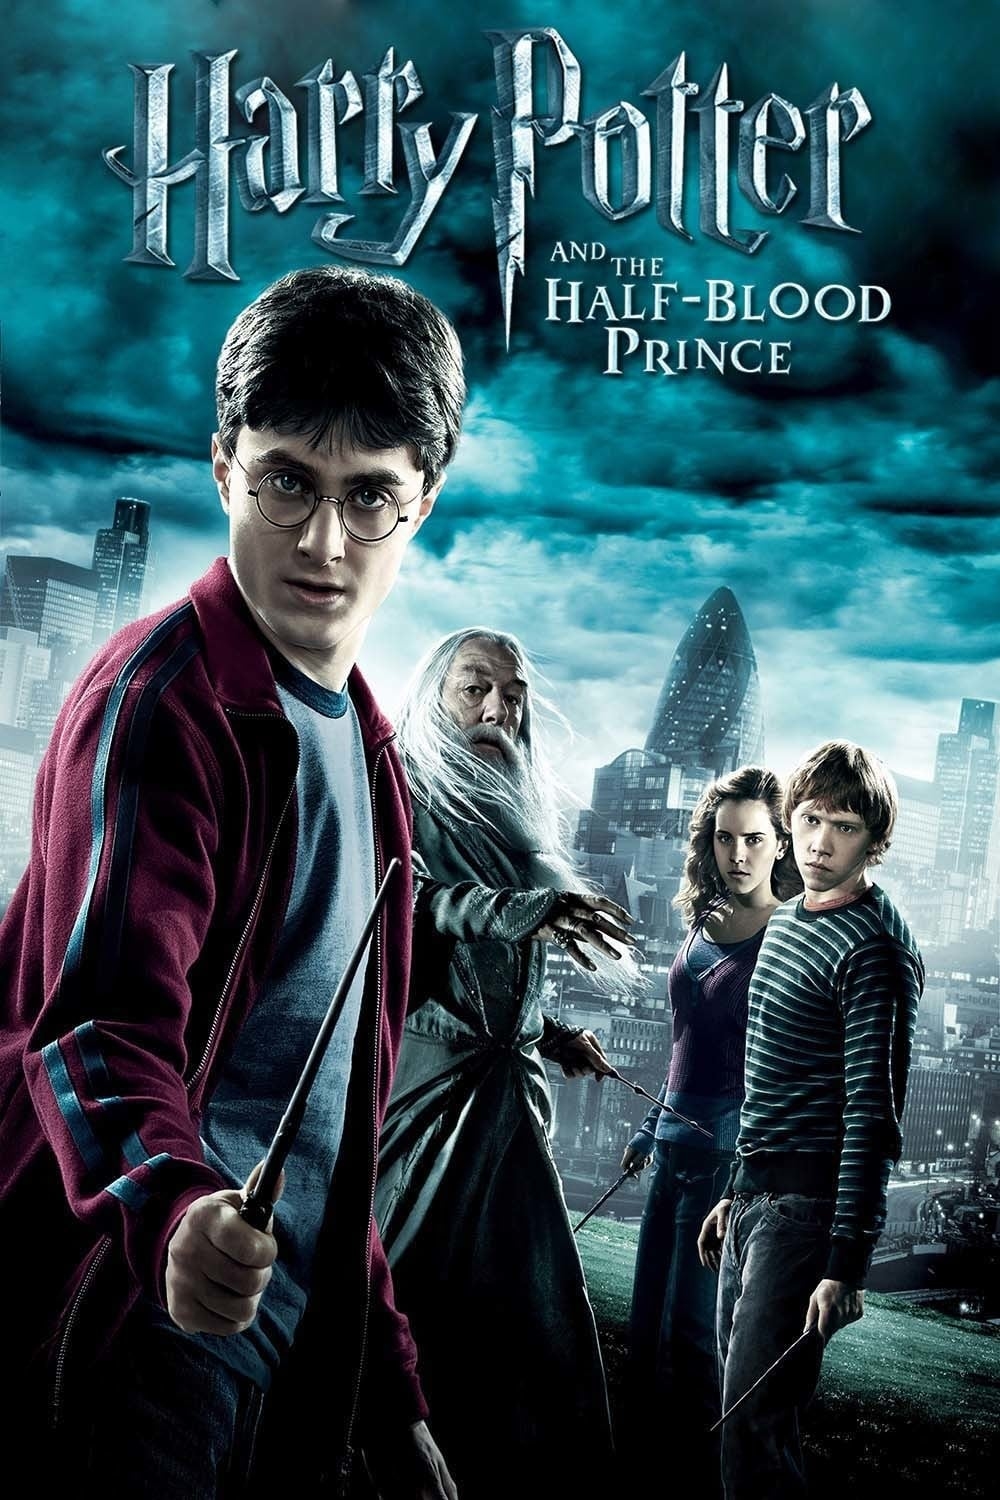 assistir filme harry potter e o enigma do príncipe